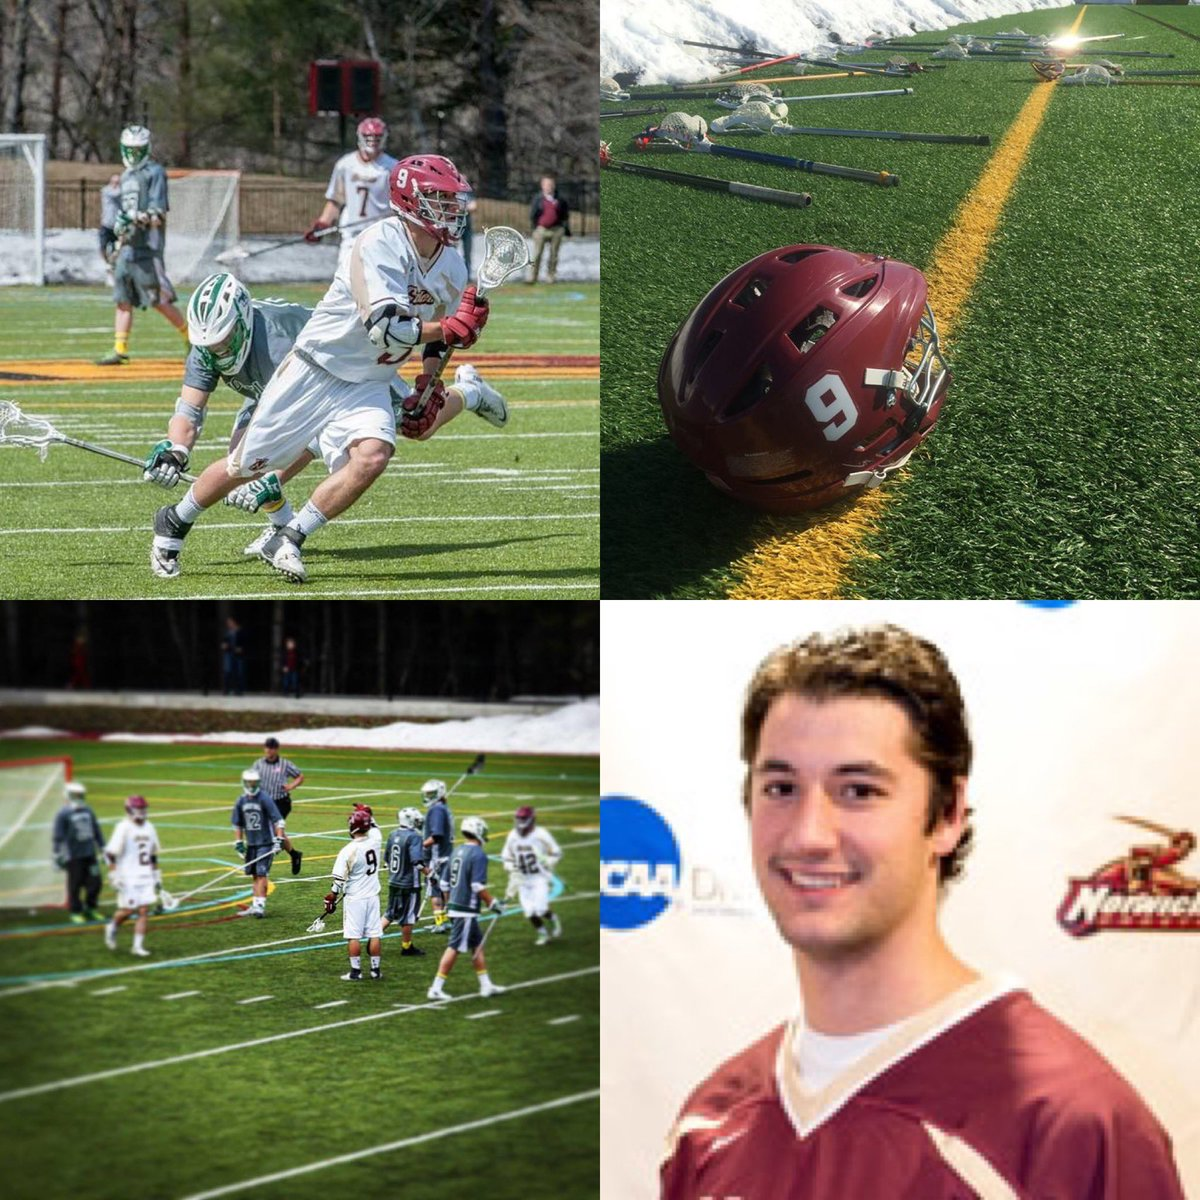 On Wednesday we get to honor our friend, and teammate Connor Roberts when we host @CastletonMLax at 6:00.  Come out and support this great cause! @NorwichCadets @norwichnews @CastletonEdu #cadlaxfamily #forconnor #cr9 #gowick